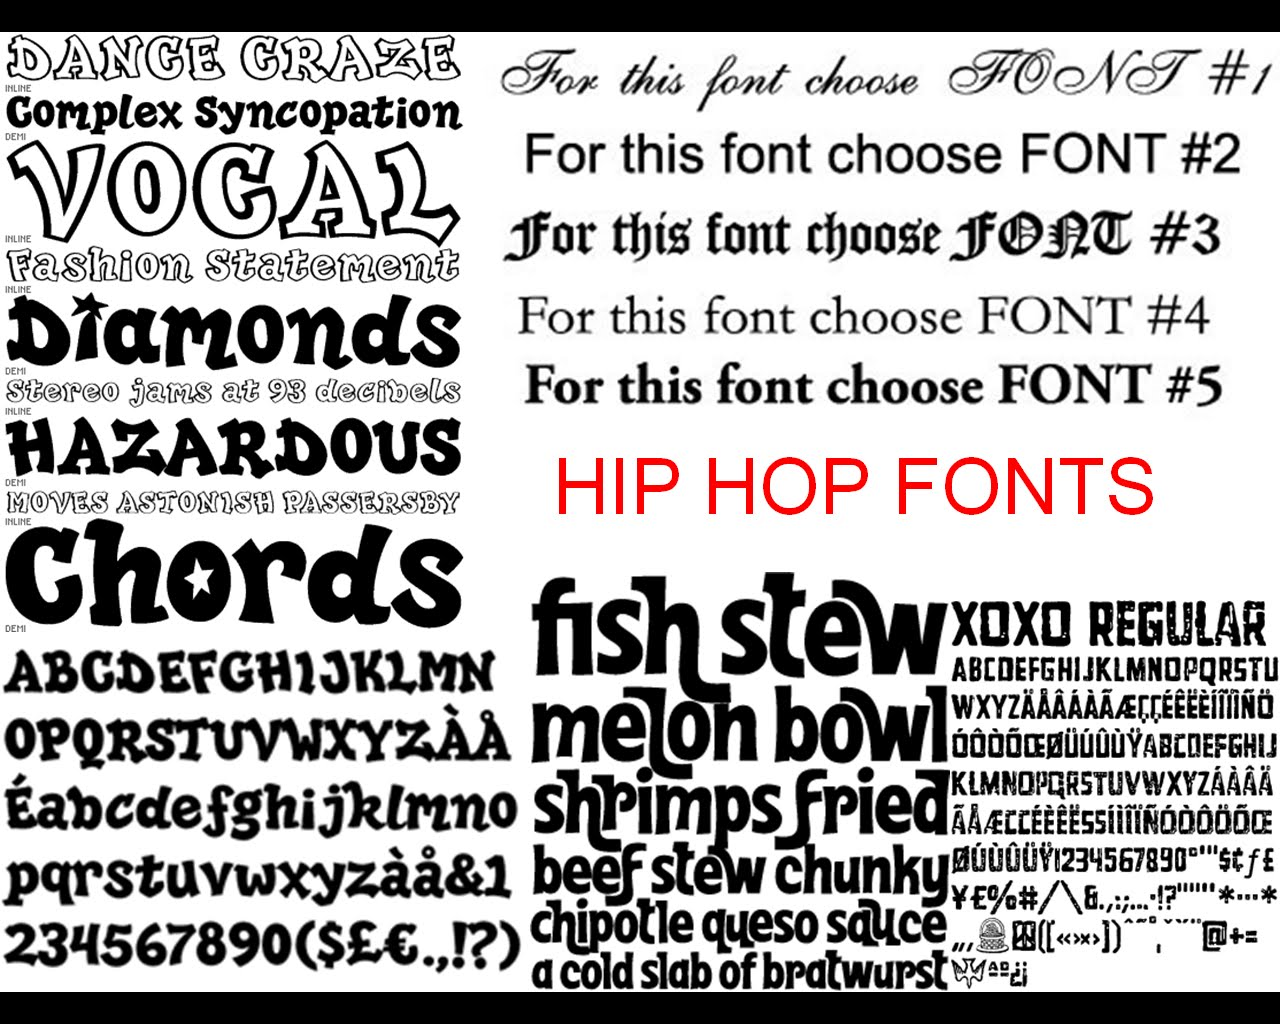 Hip hop rnb research fonts